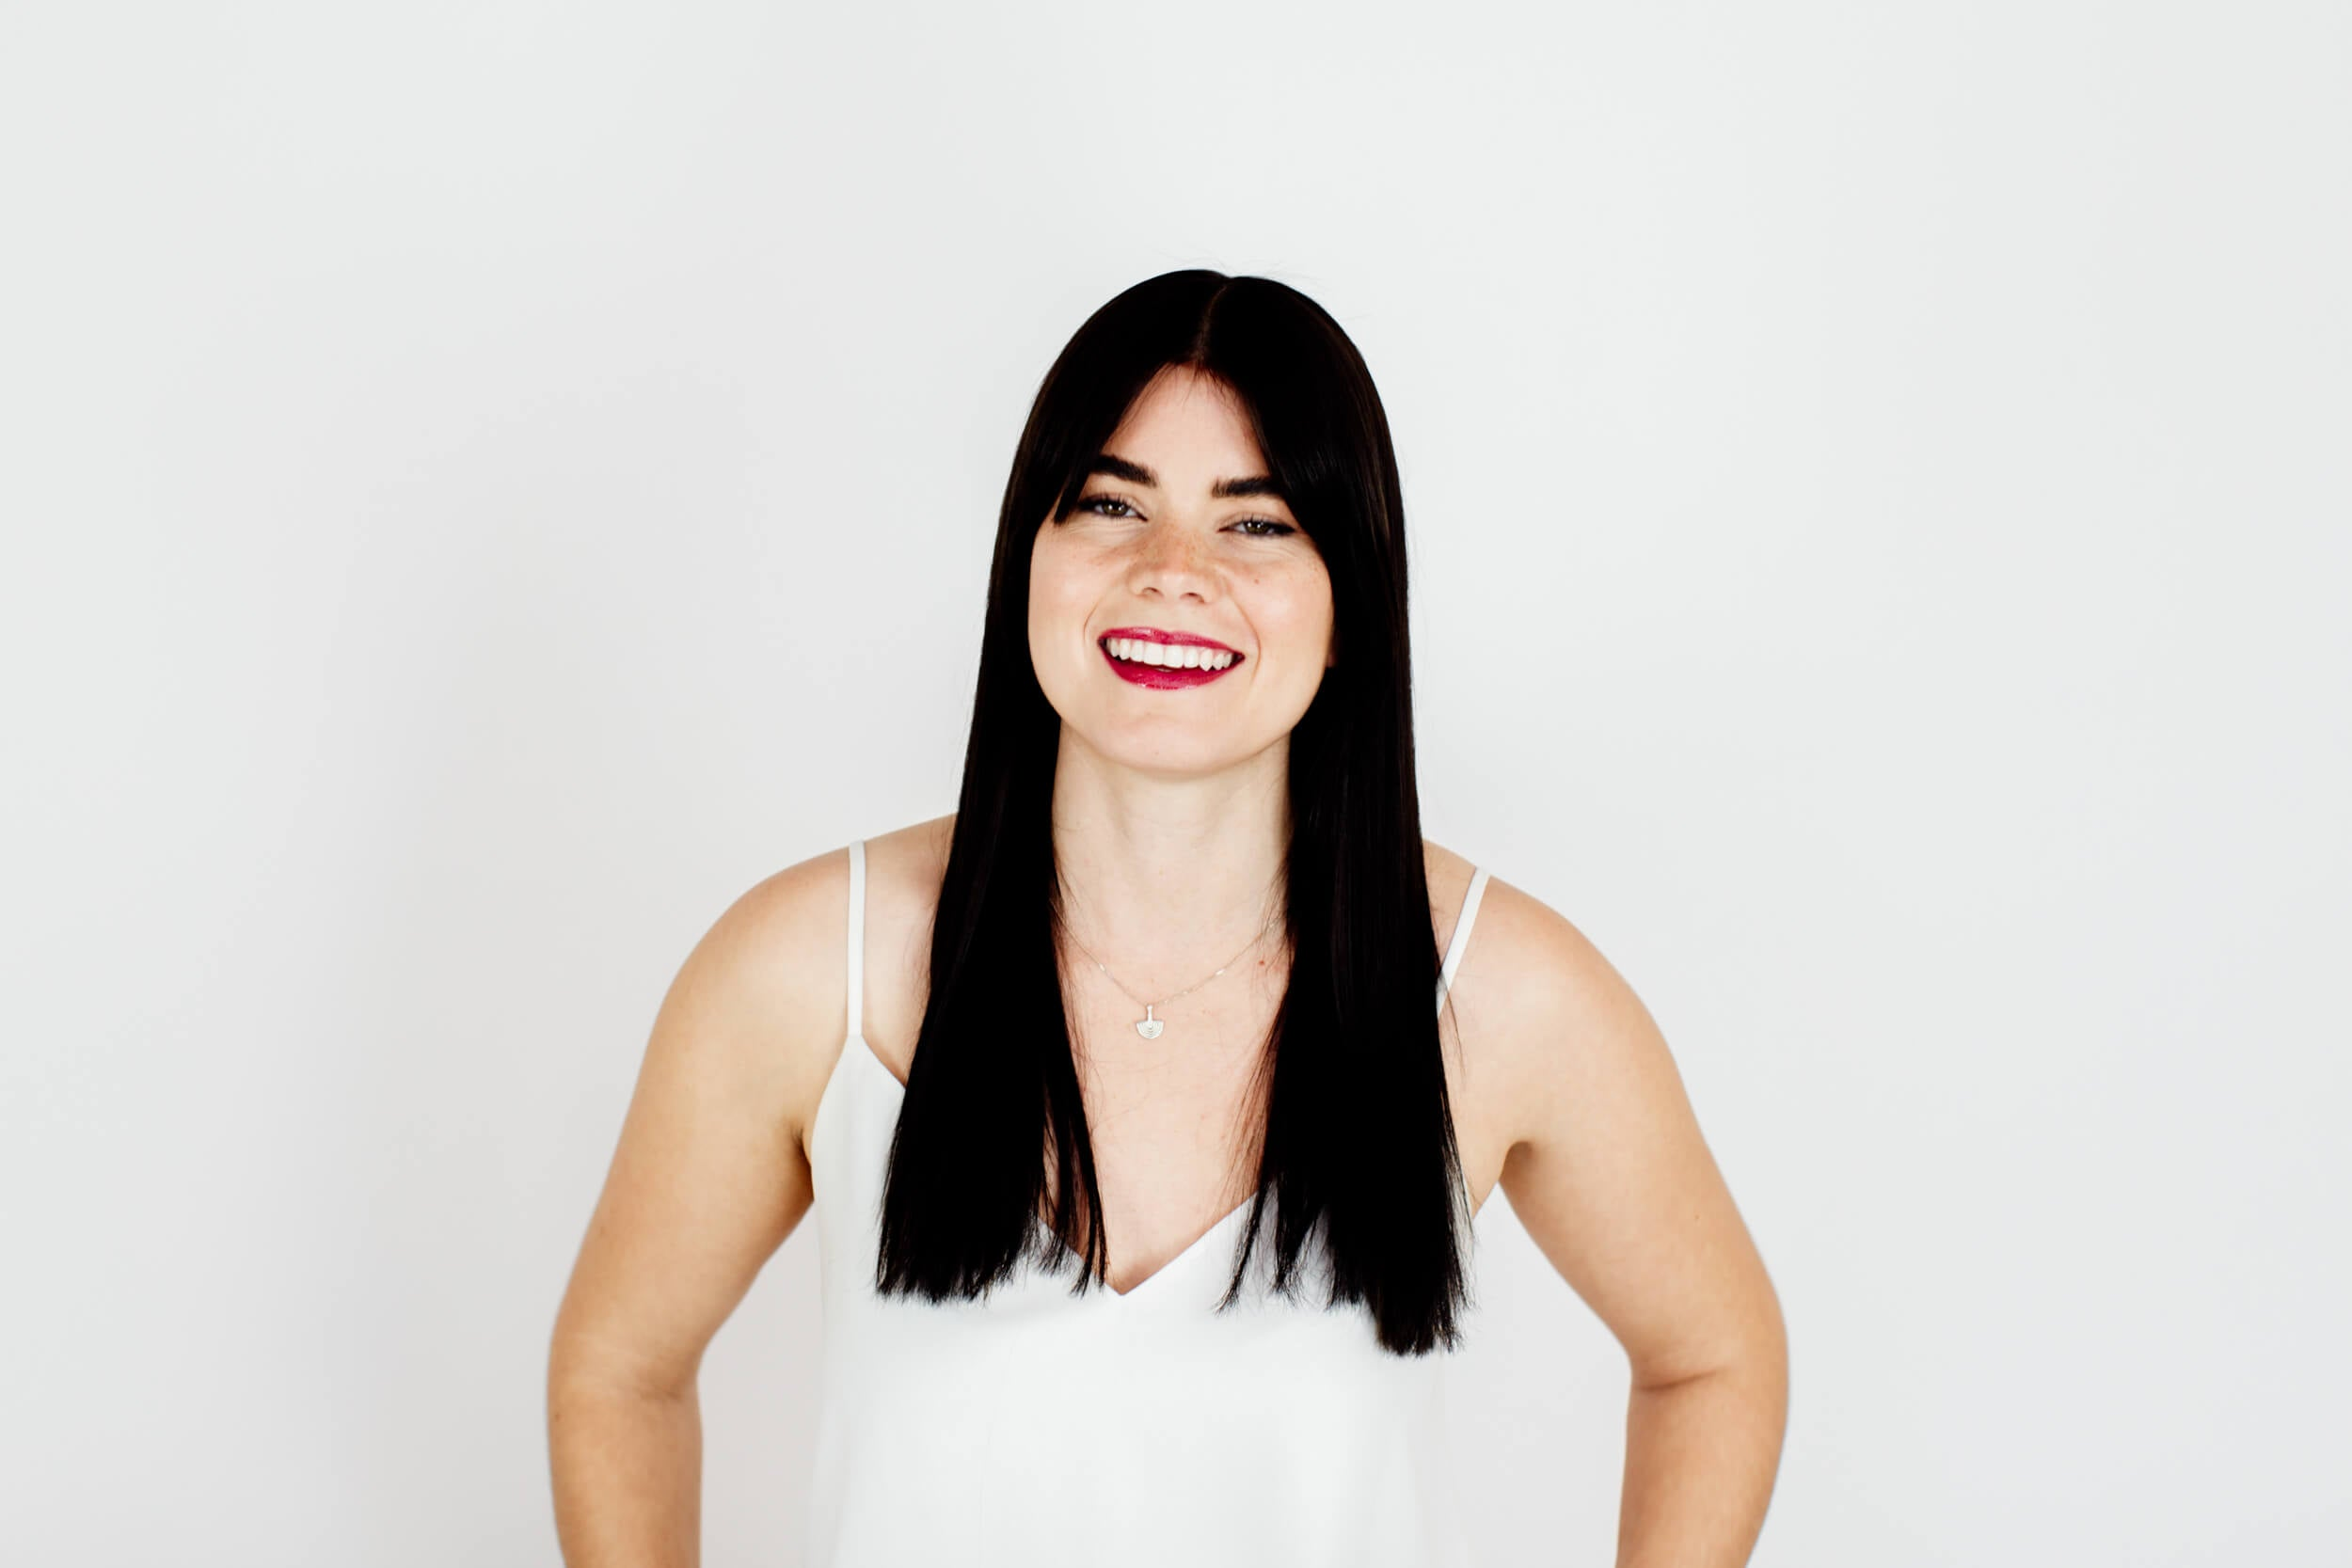 A woman with long black hair smiles at the camera.